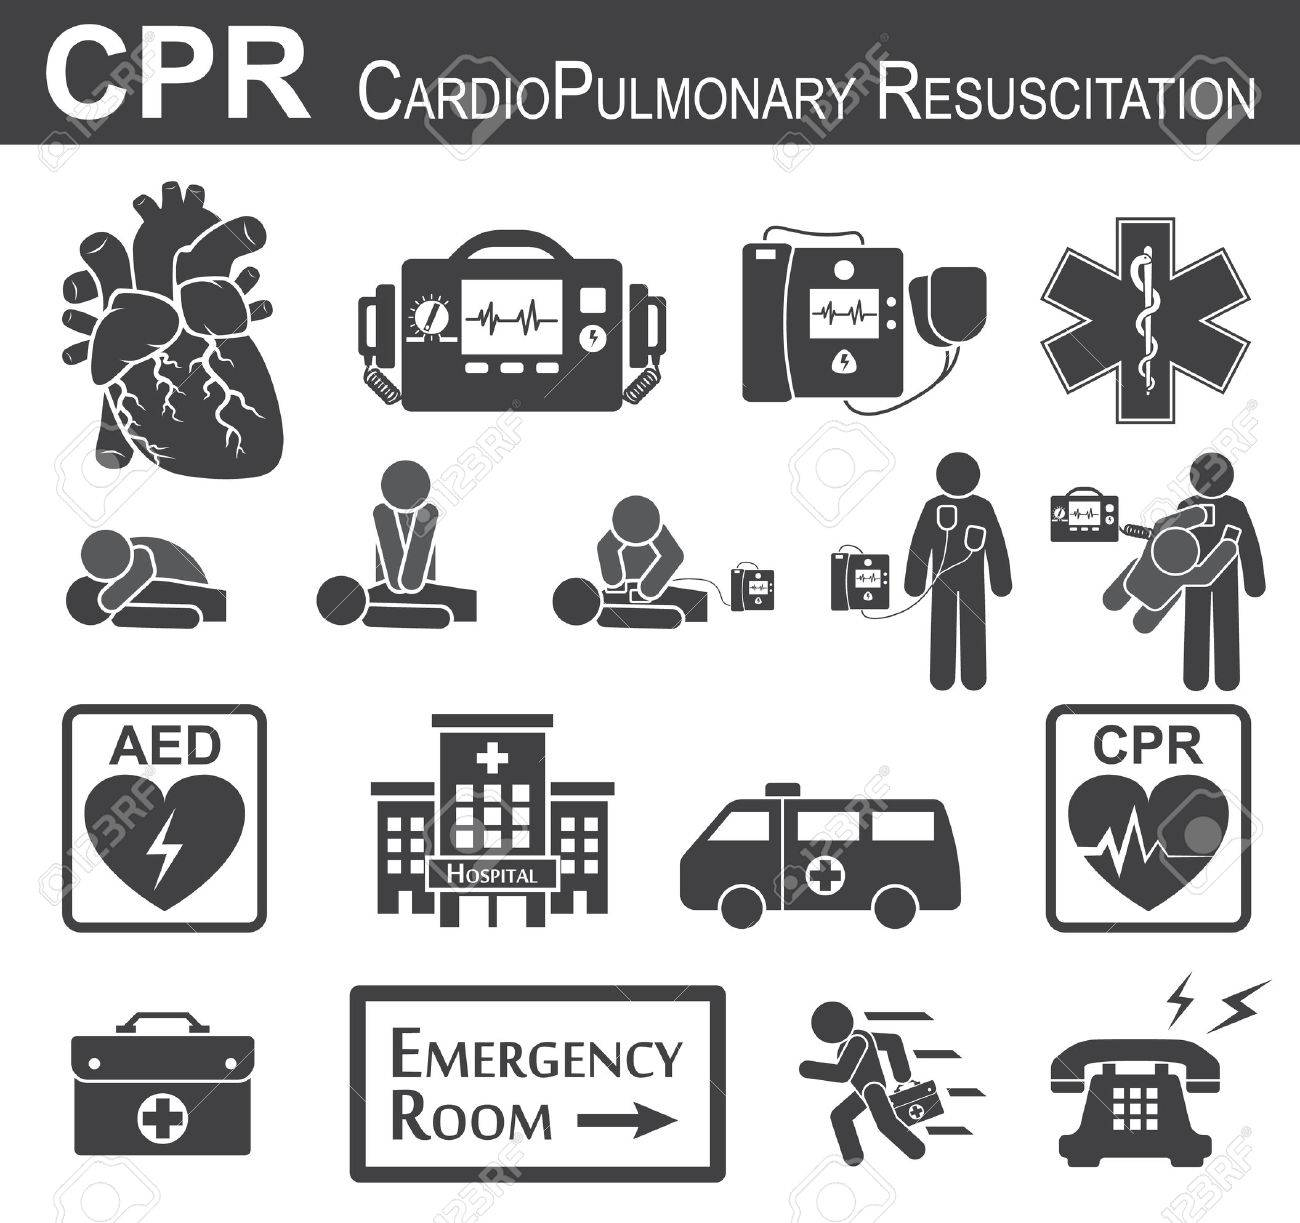 CPR ( Cardiopulmonary resuscitation ) icon ( black & white , flat design ) , Basic life support ( BLS )and Advanced cardiac life support ( ACLS )( mouth to mouth , chest compression , defibrillation ) - 55067908